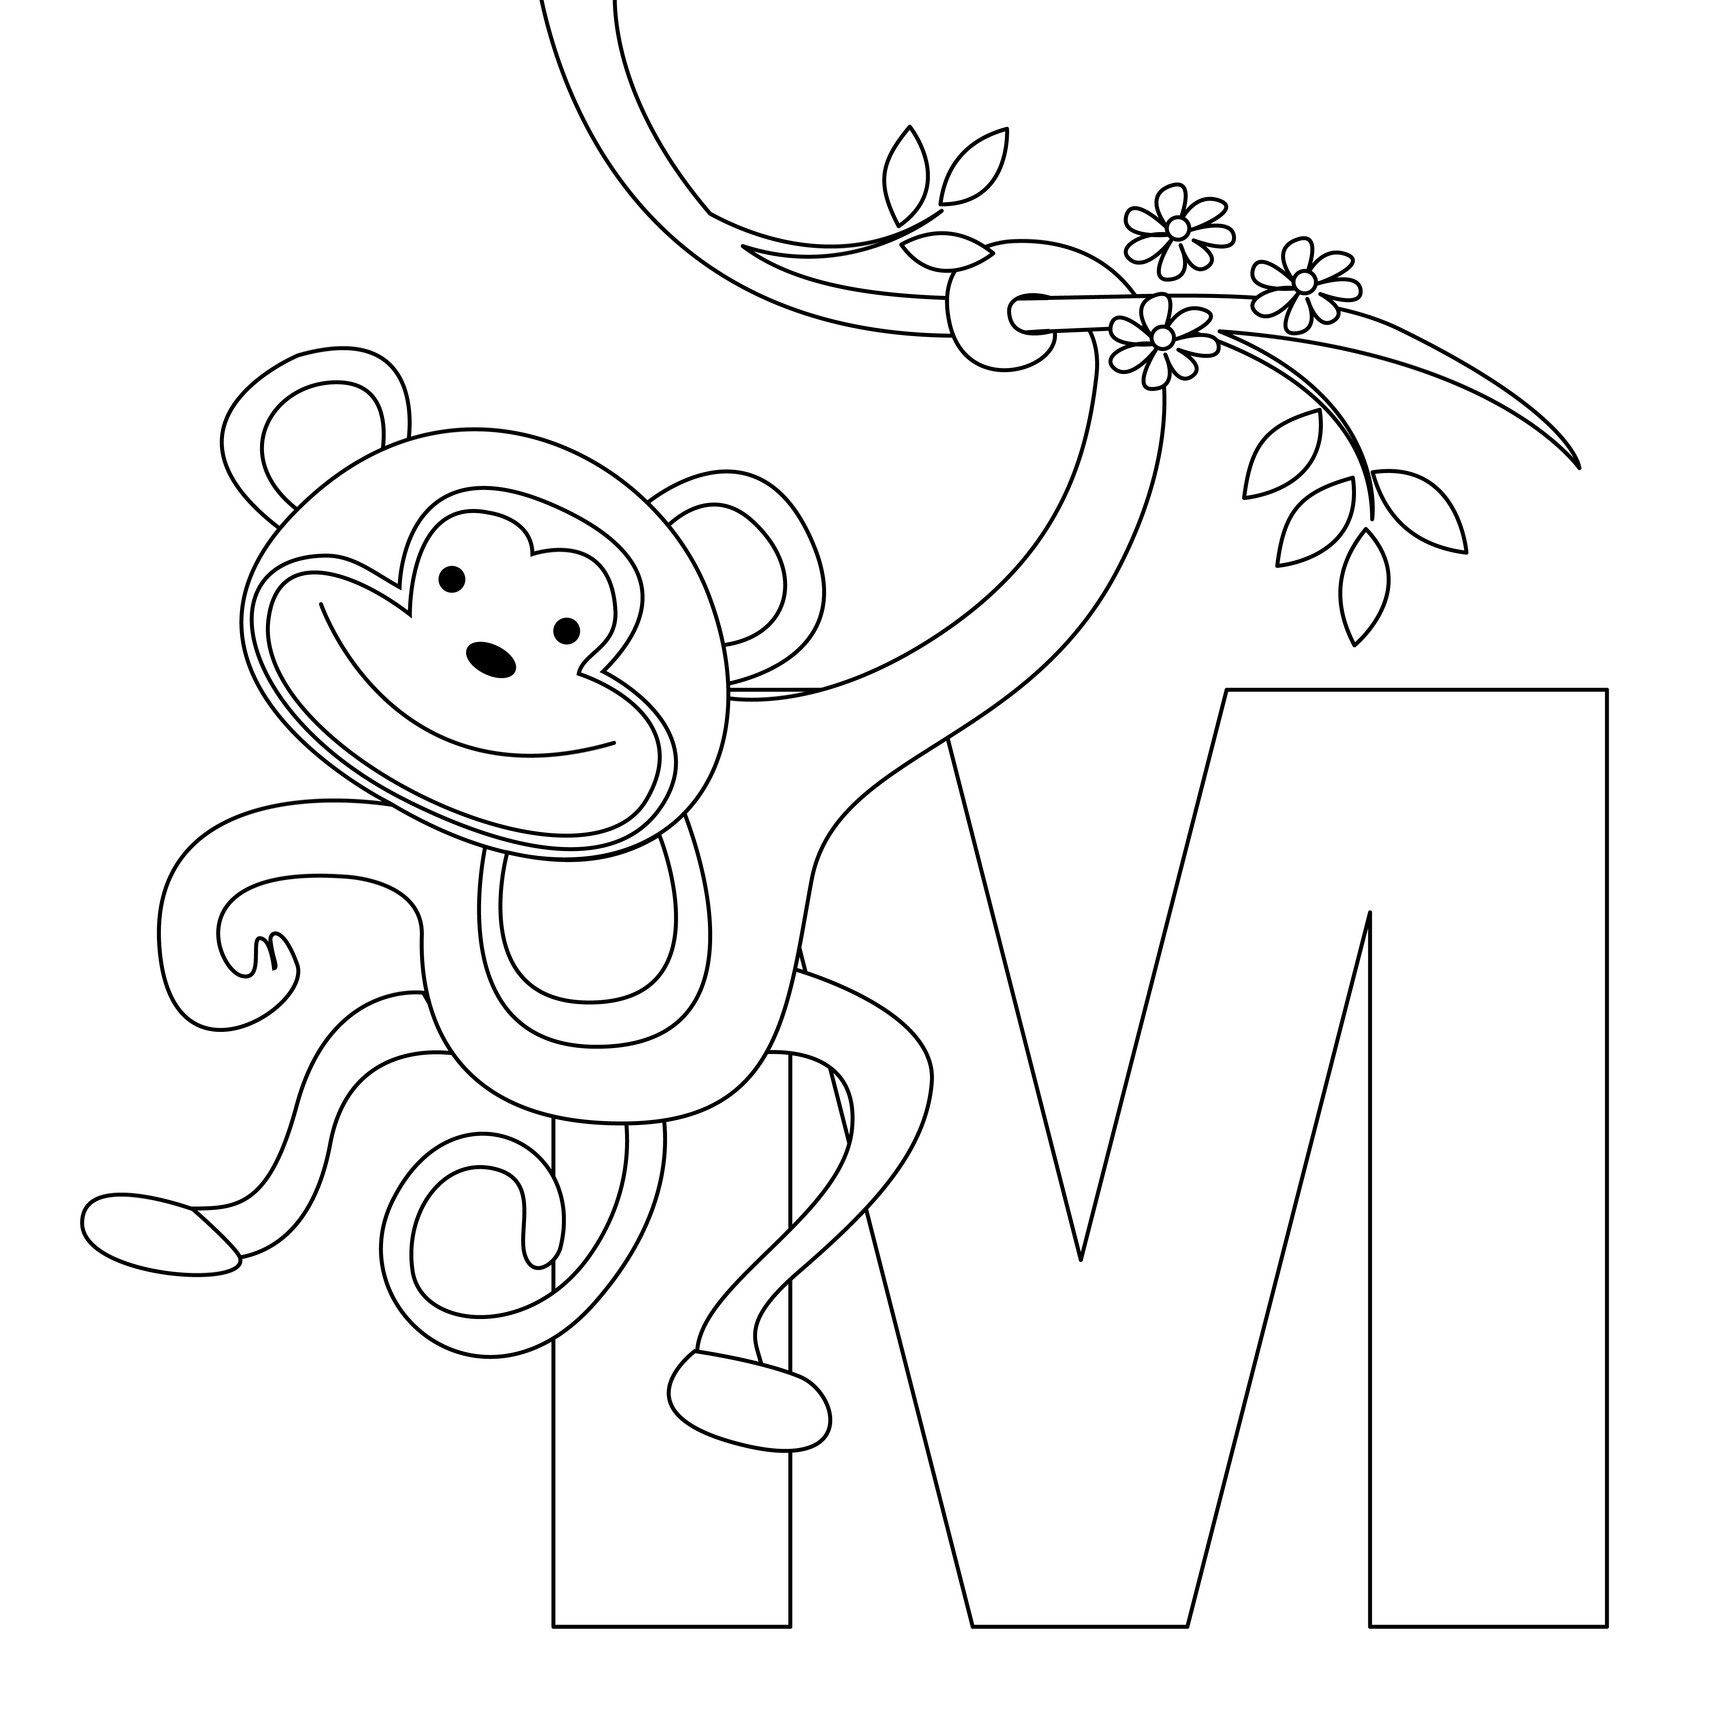 Free printable alphabet coloring pages for best news to go